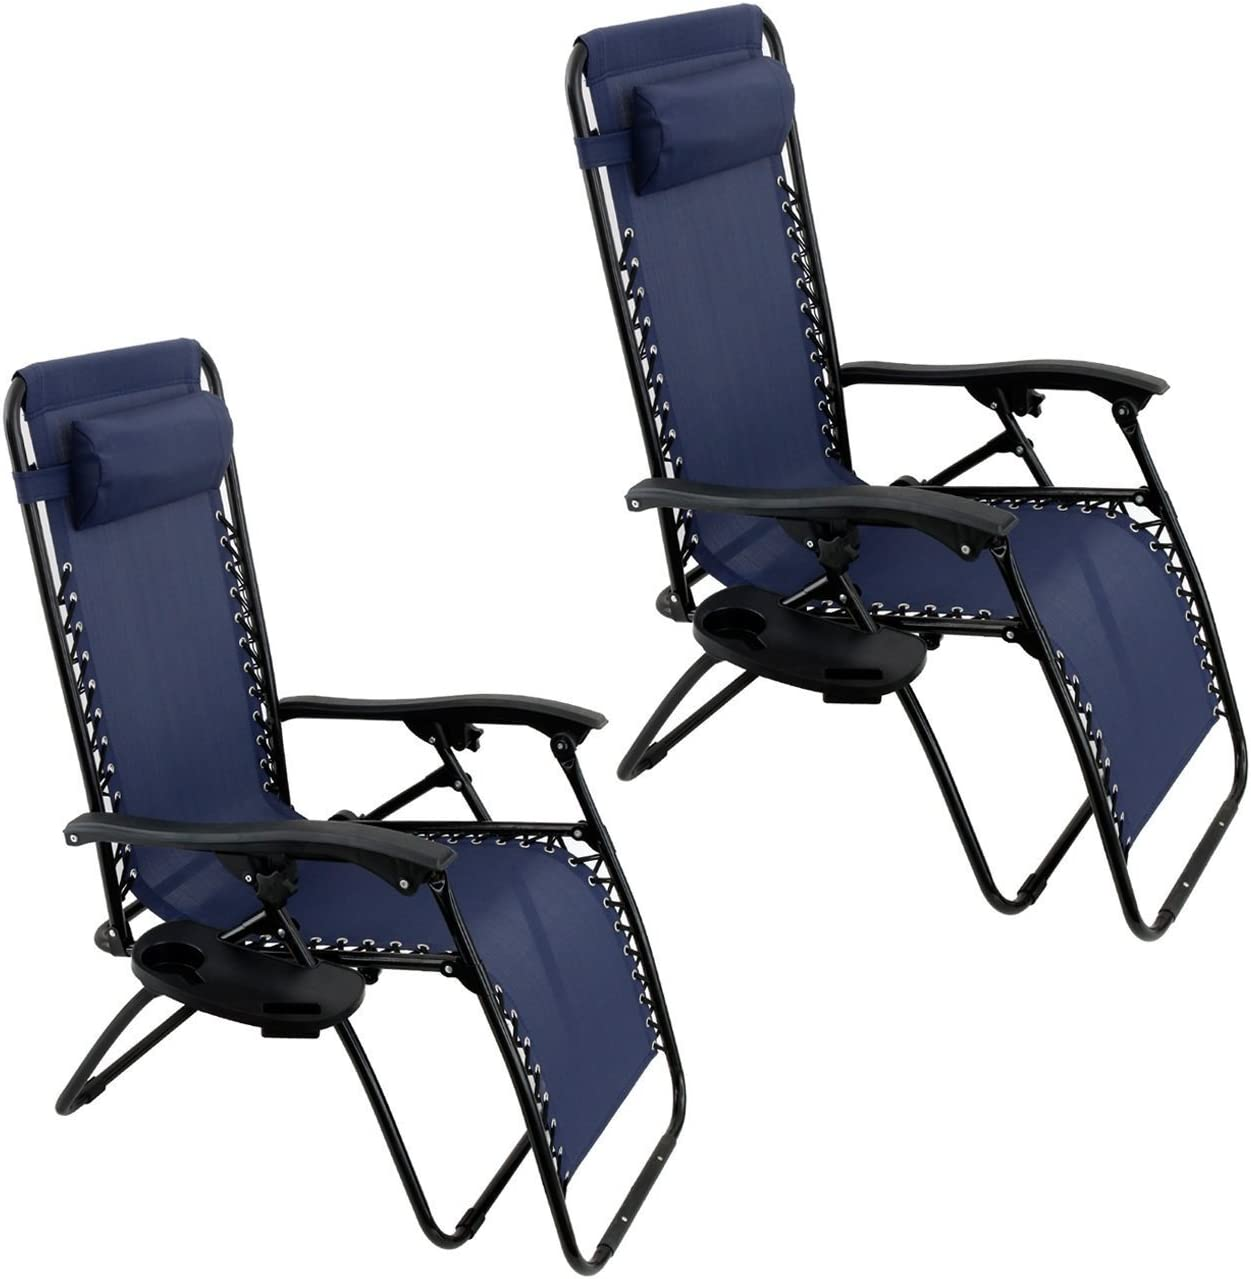 Oshion 1 Pair Zero Gravity Chairs Black Lounge Patio Chairs Outdoor Yard Beach New Blue